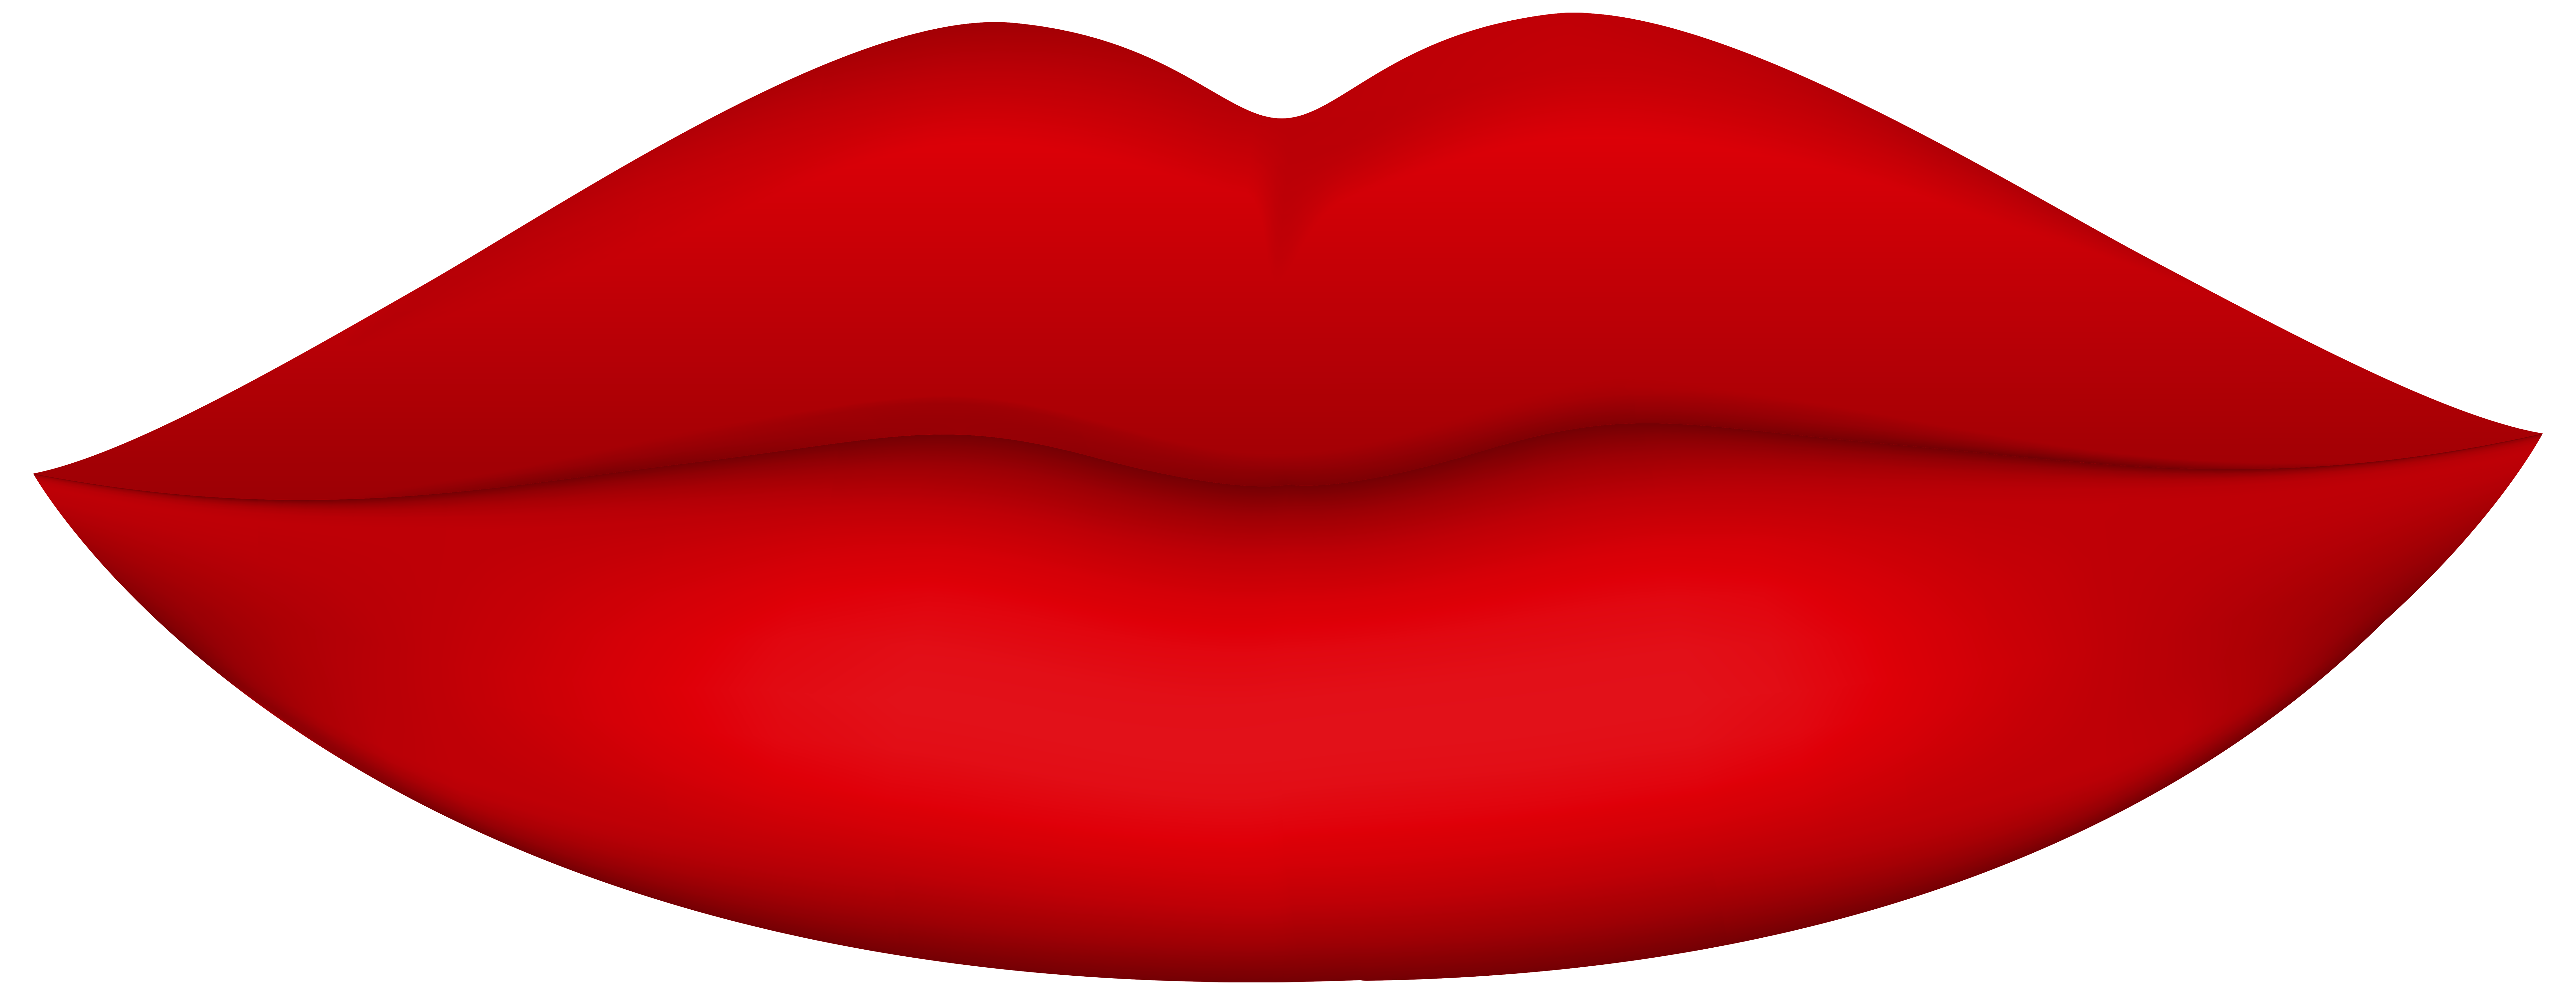 8000x3090 Red Lips Clip Art Many Interesting Cliparts